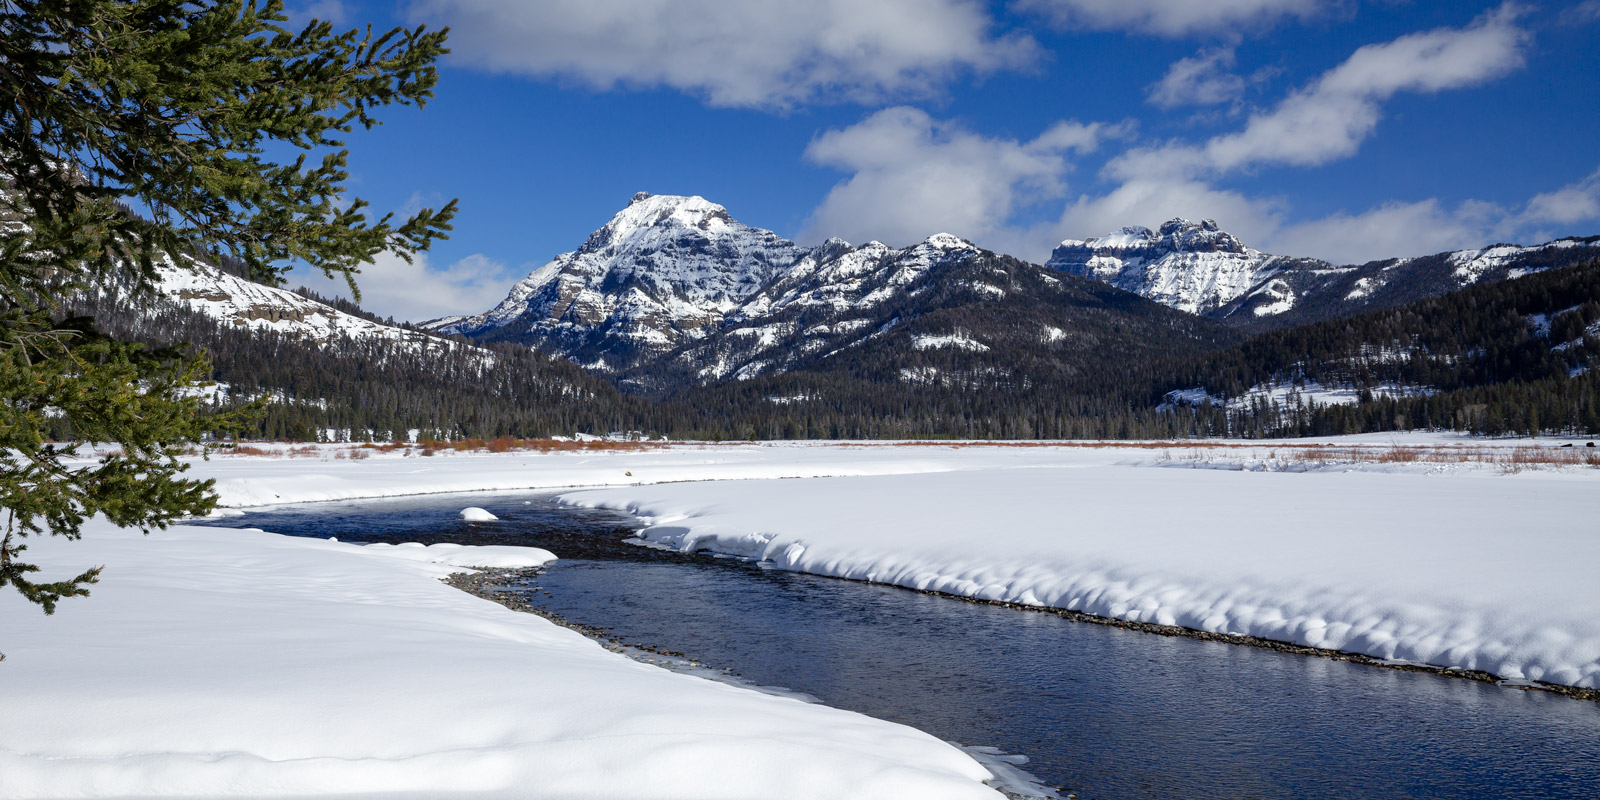 Wyoming, Yellowstone, Winter, River, Snow, limited edition, photograph, fine art, landscape, photo